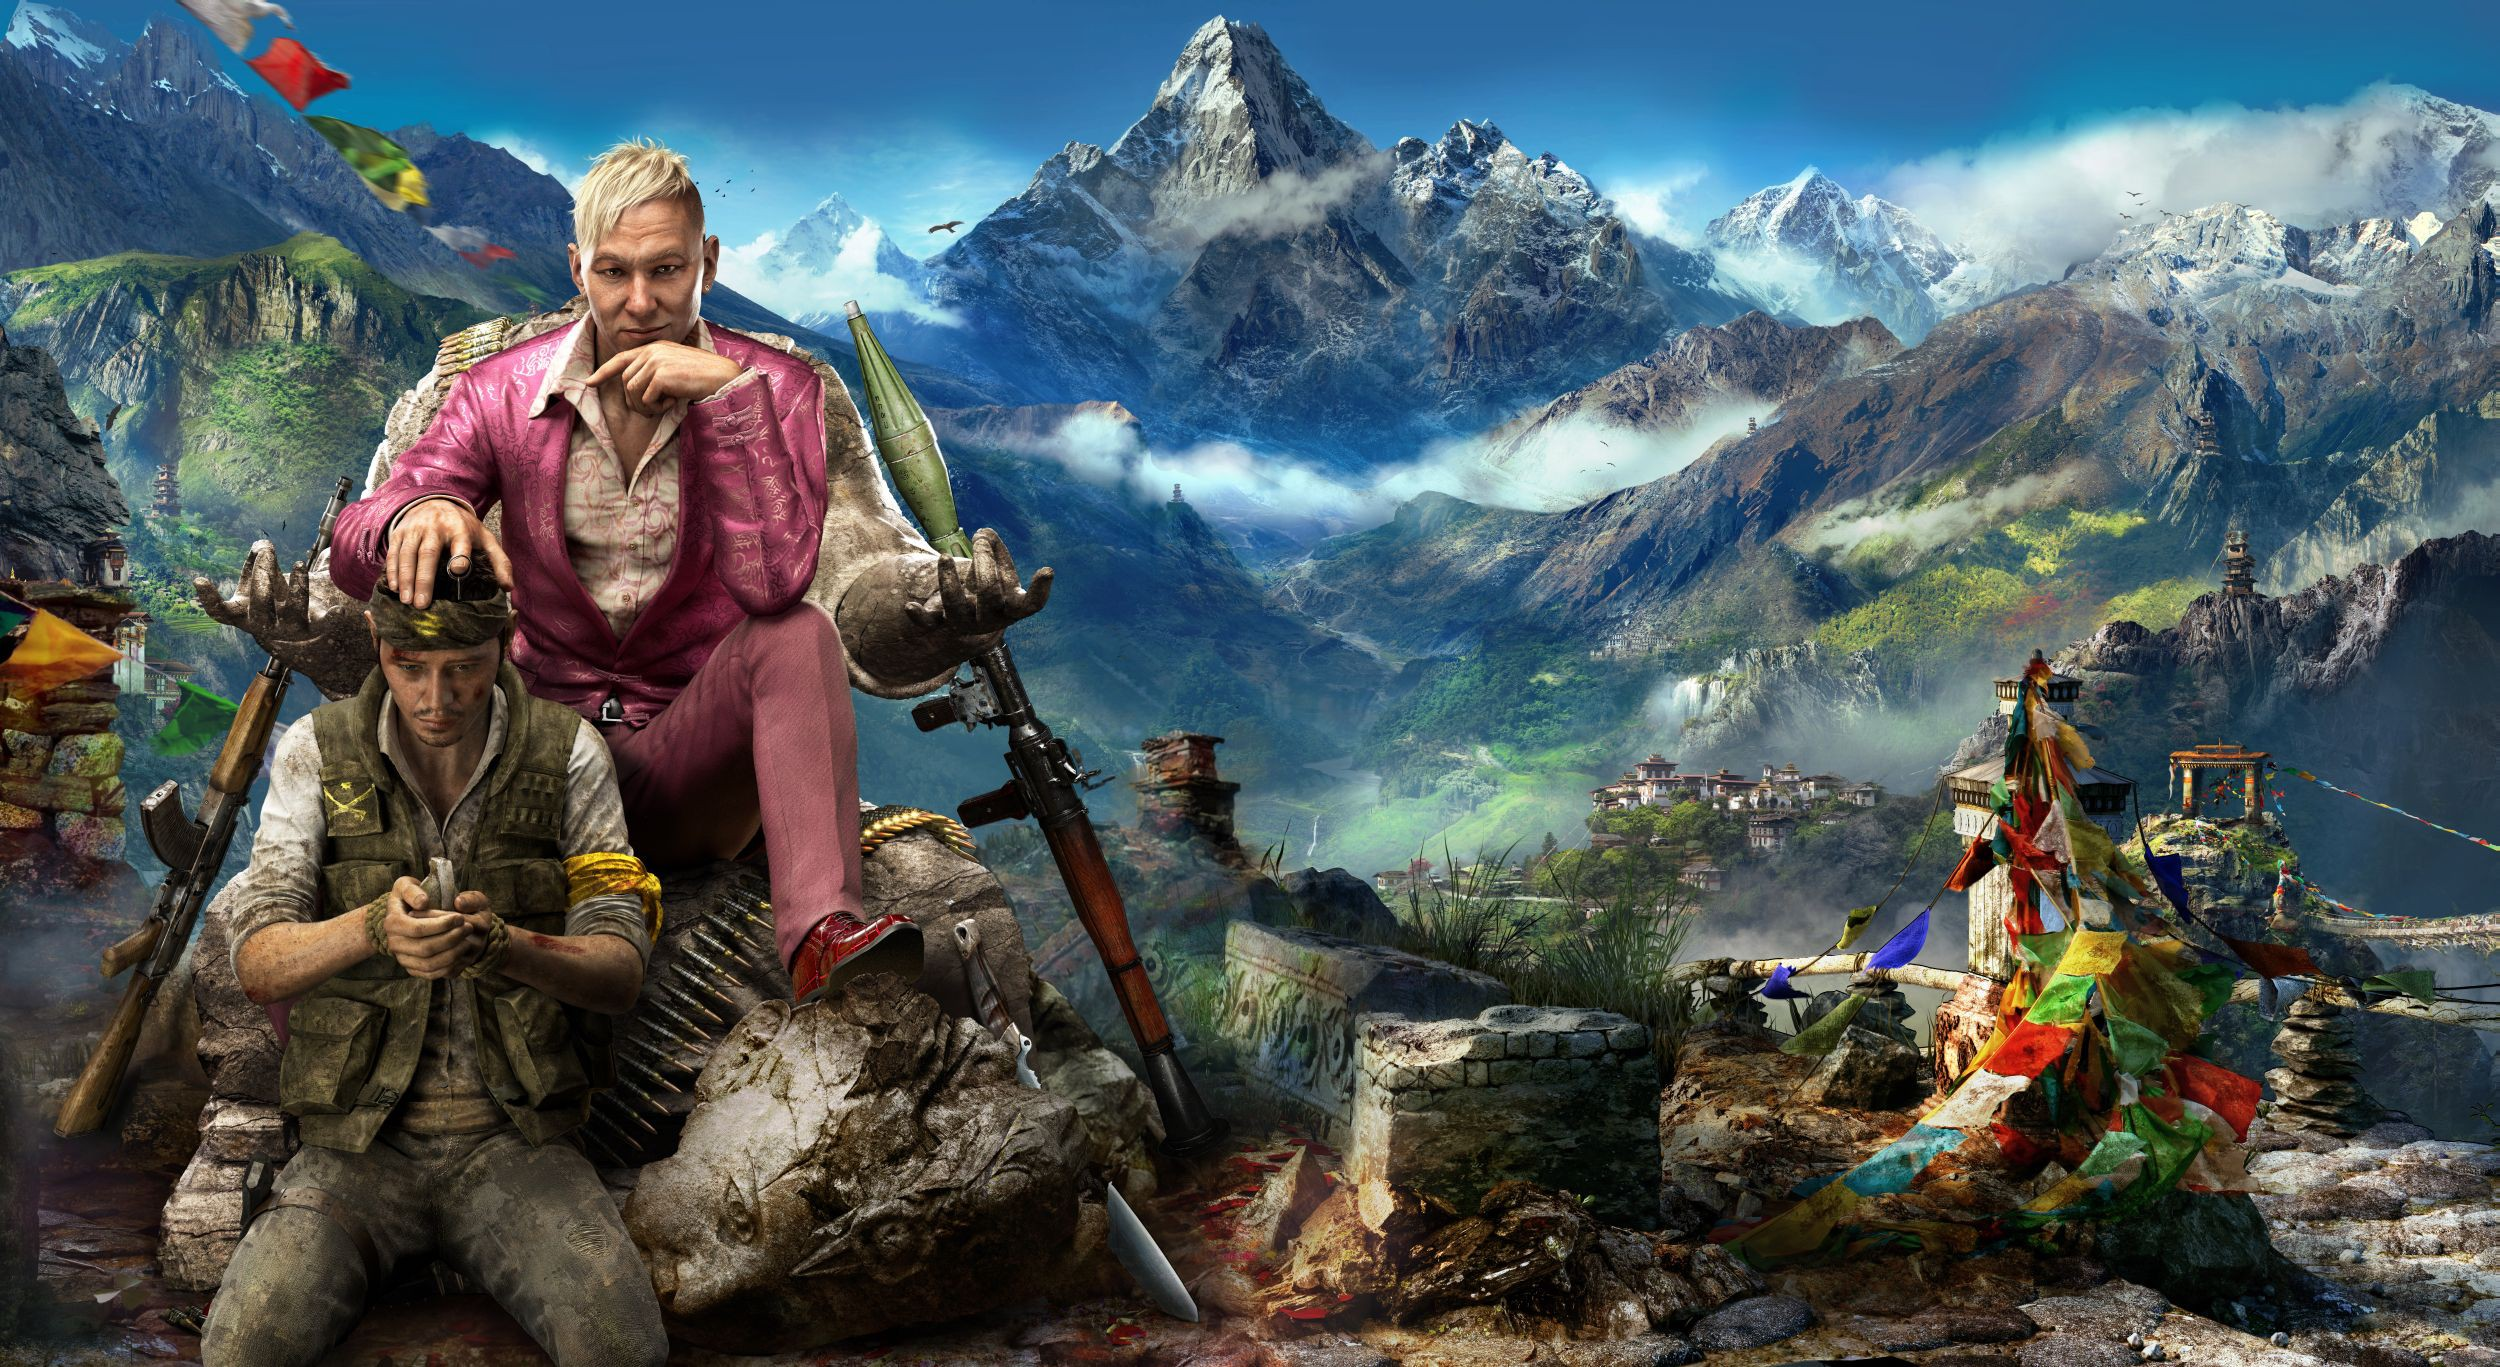 Purple Wallpaper Hd Far Cry 4 Wallpaper High Res 9037 Wallpaper Walldiskpaper